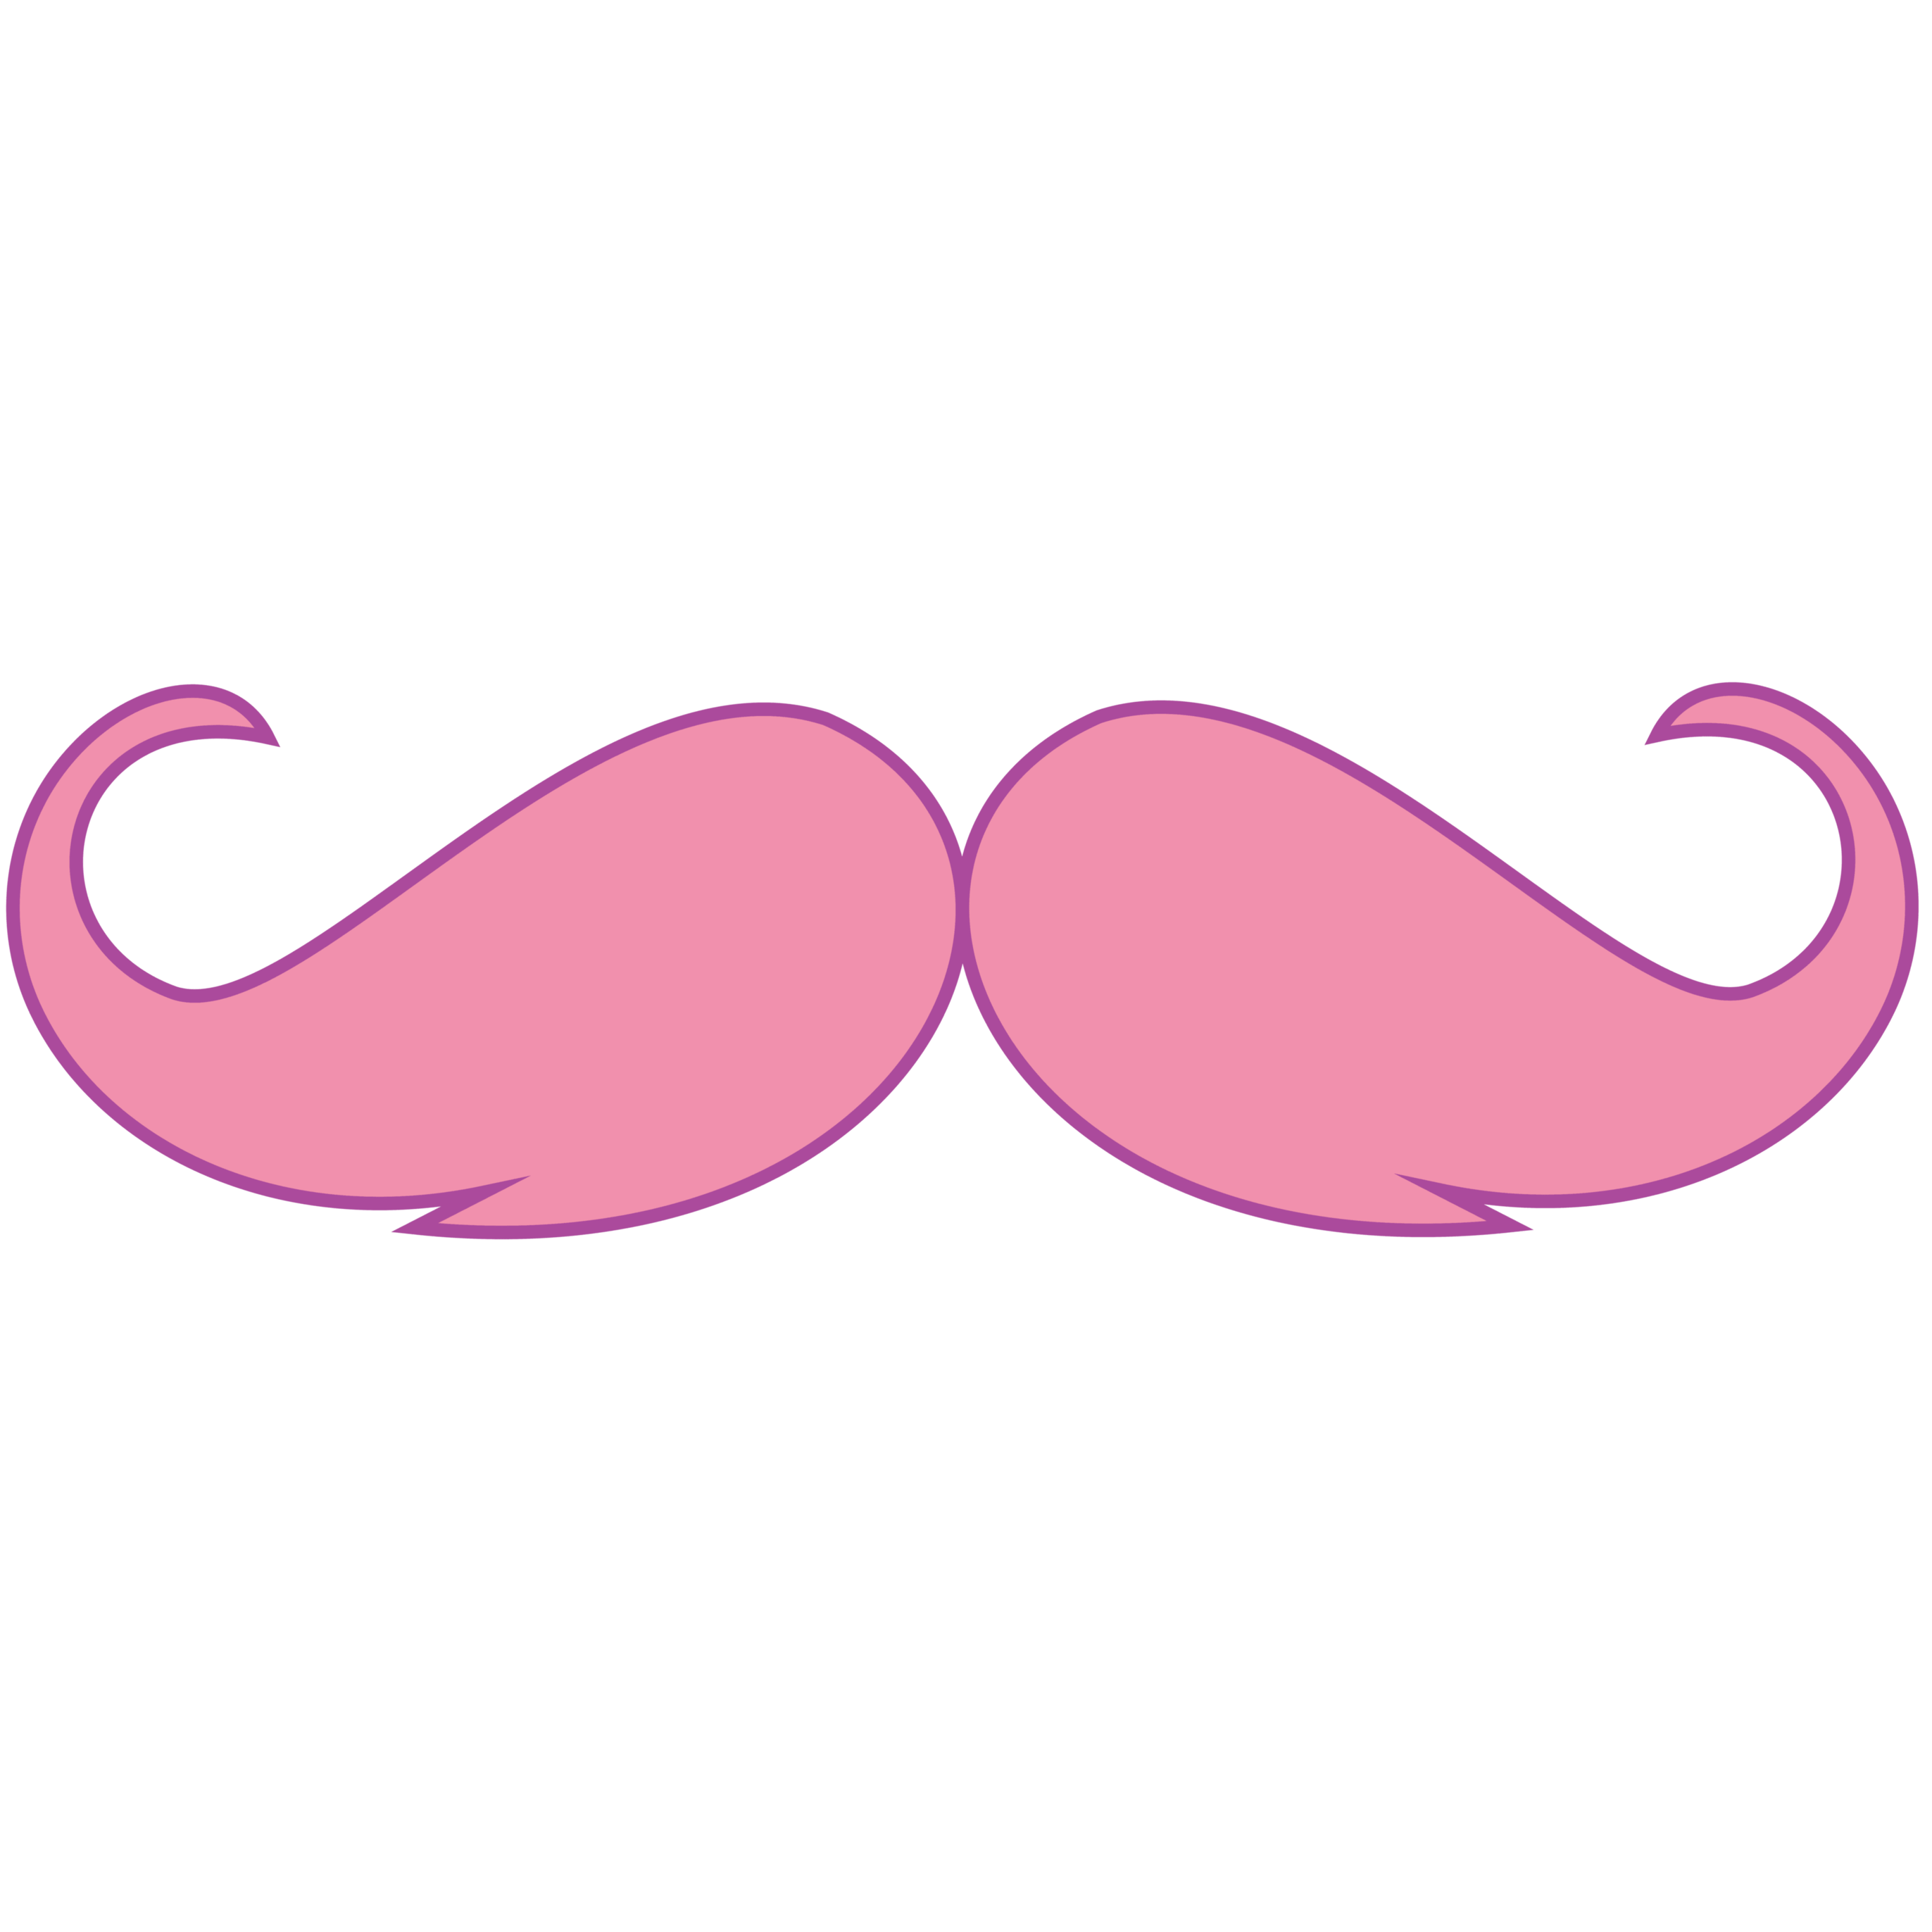 Markiplier mustache png. Collection of styles